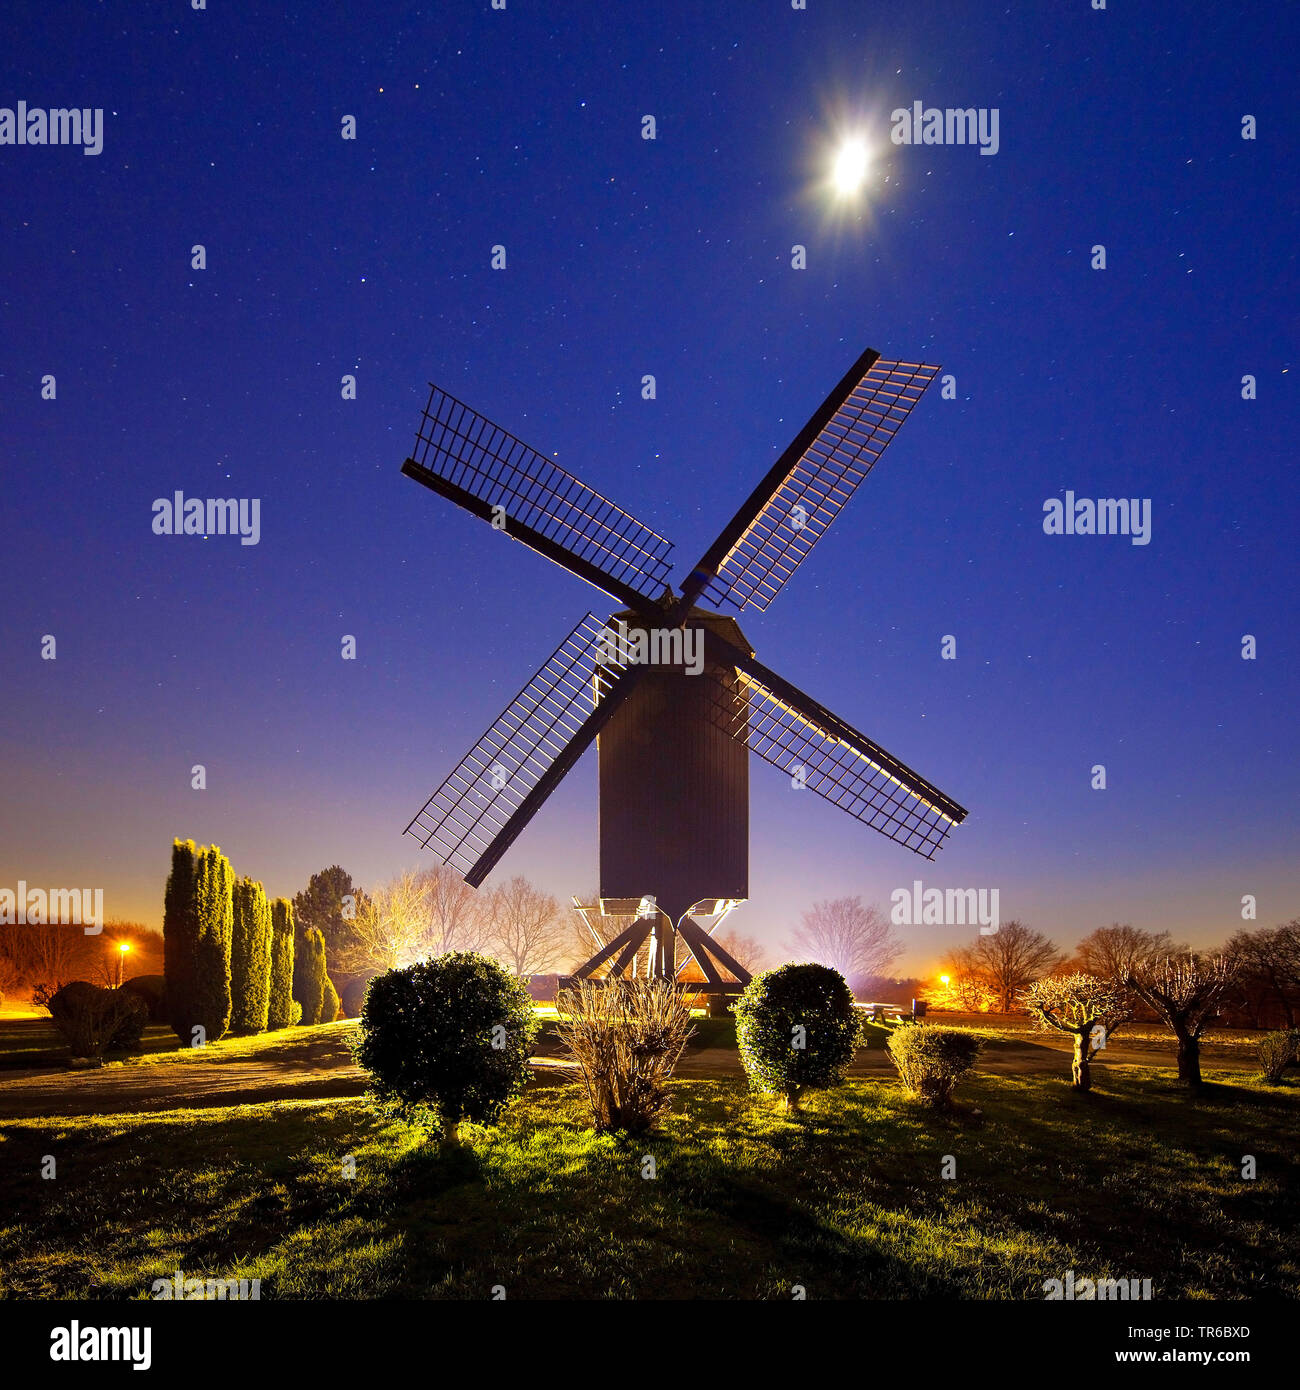 Bockwindmuehle in Toenisberg mit Vollmond, Deutschland, Nordrhein-Westfalen, Niederrhein, Kempen | post mill in Toenisberg with full moon, Germany, No Stock Photo